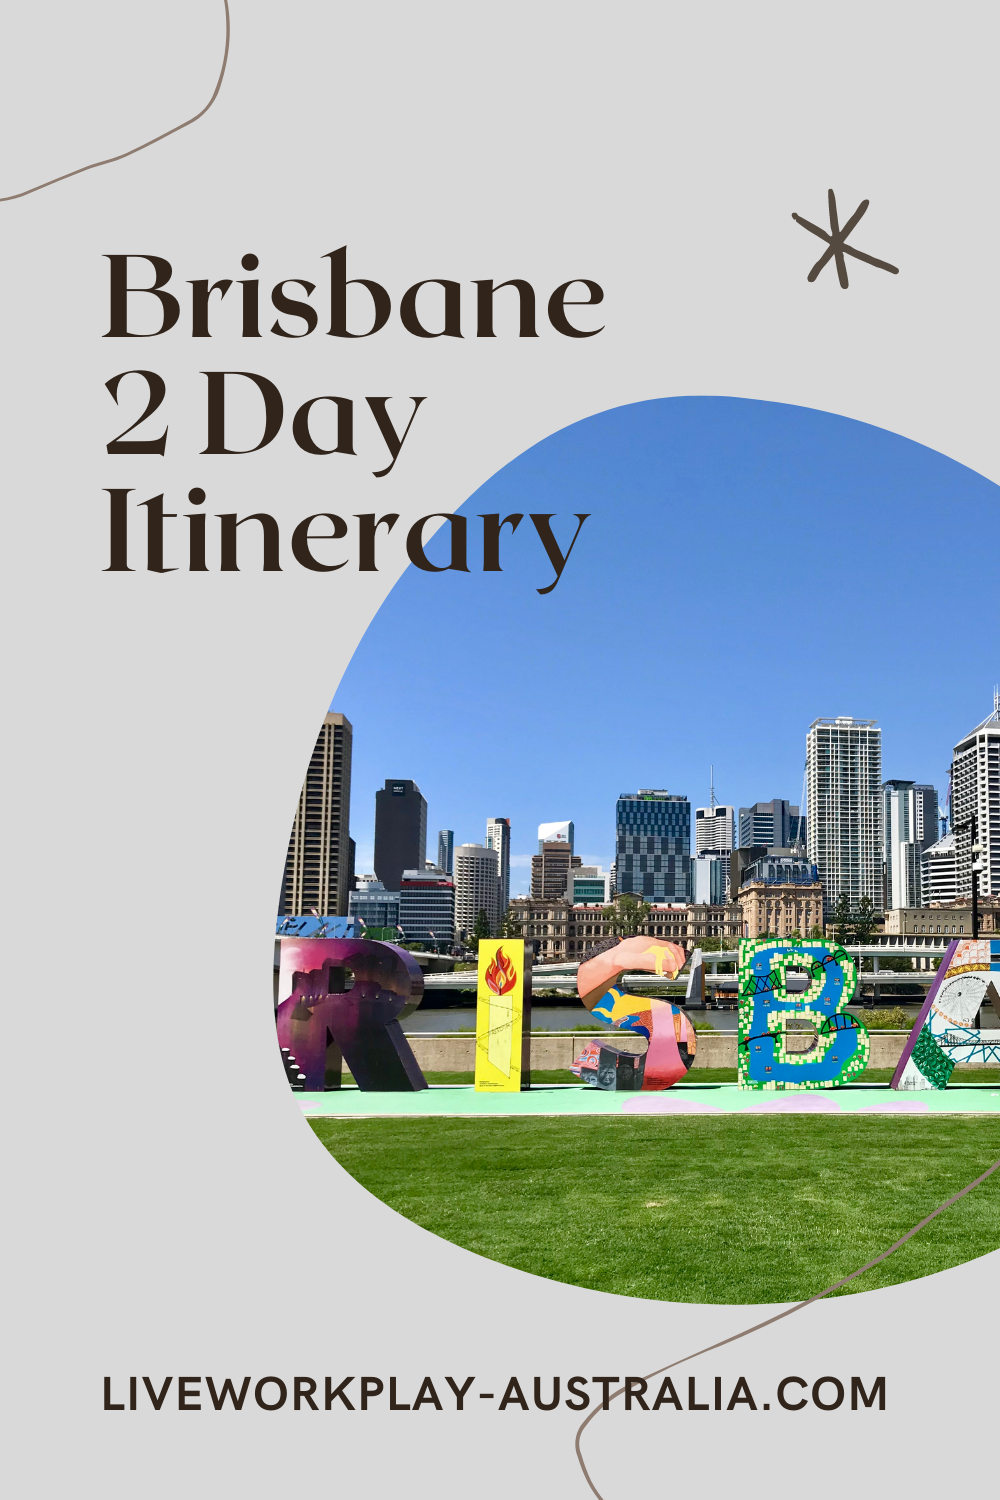 Brisbane Sign In Front Of City During Brisbane 2 Day Itinerary